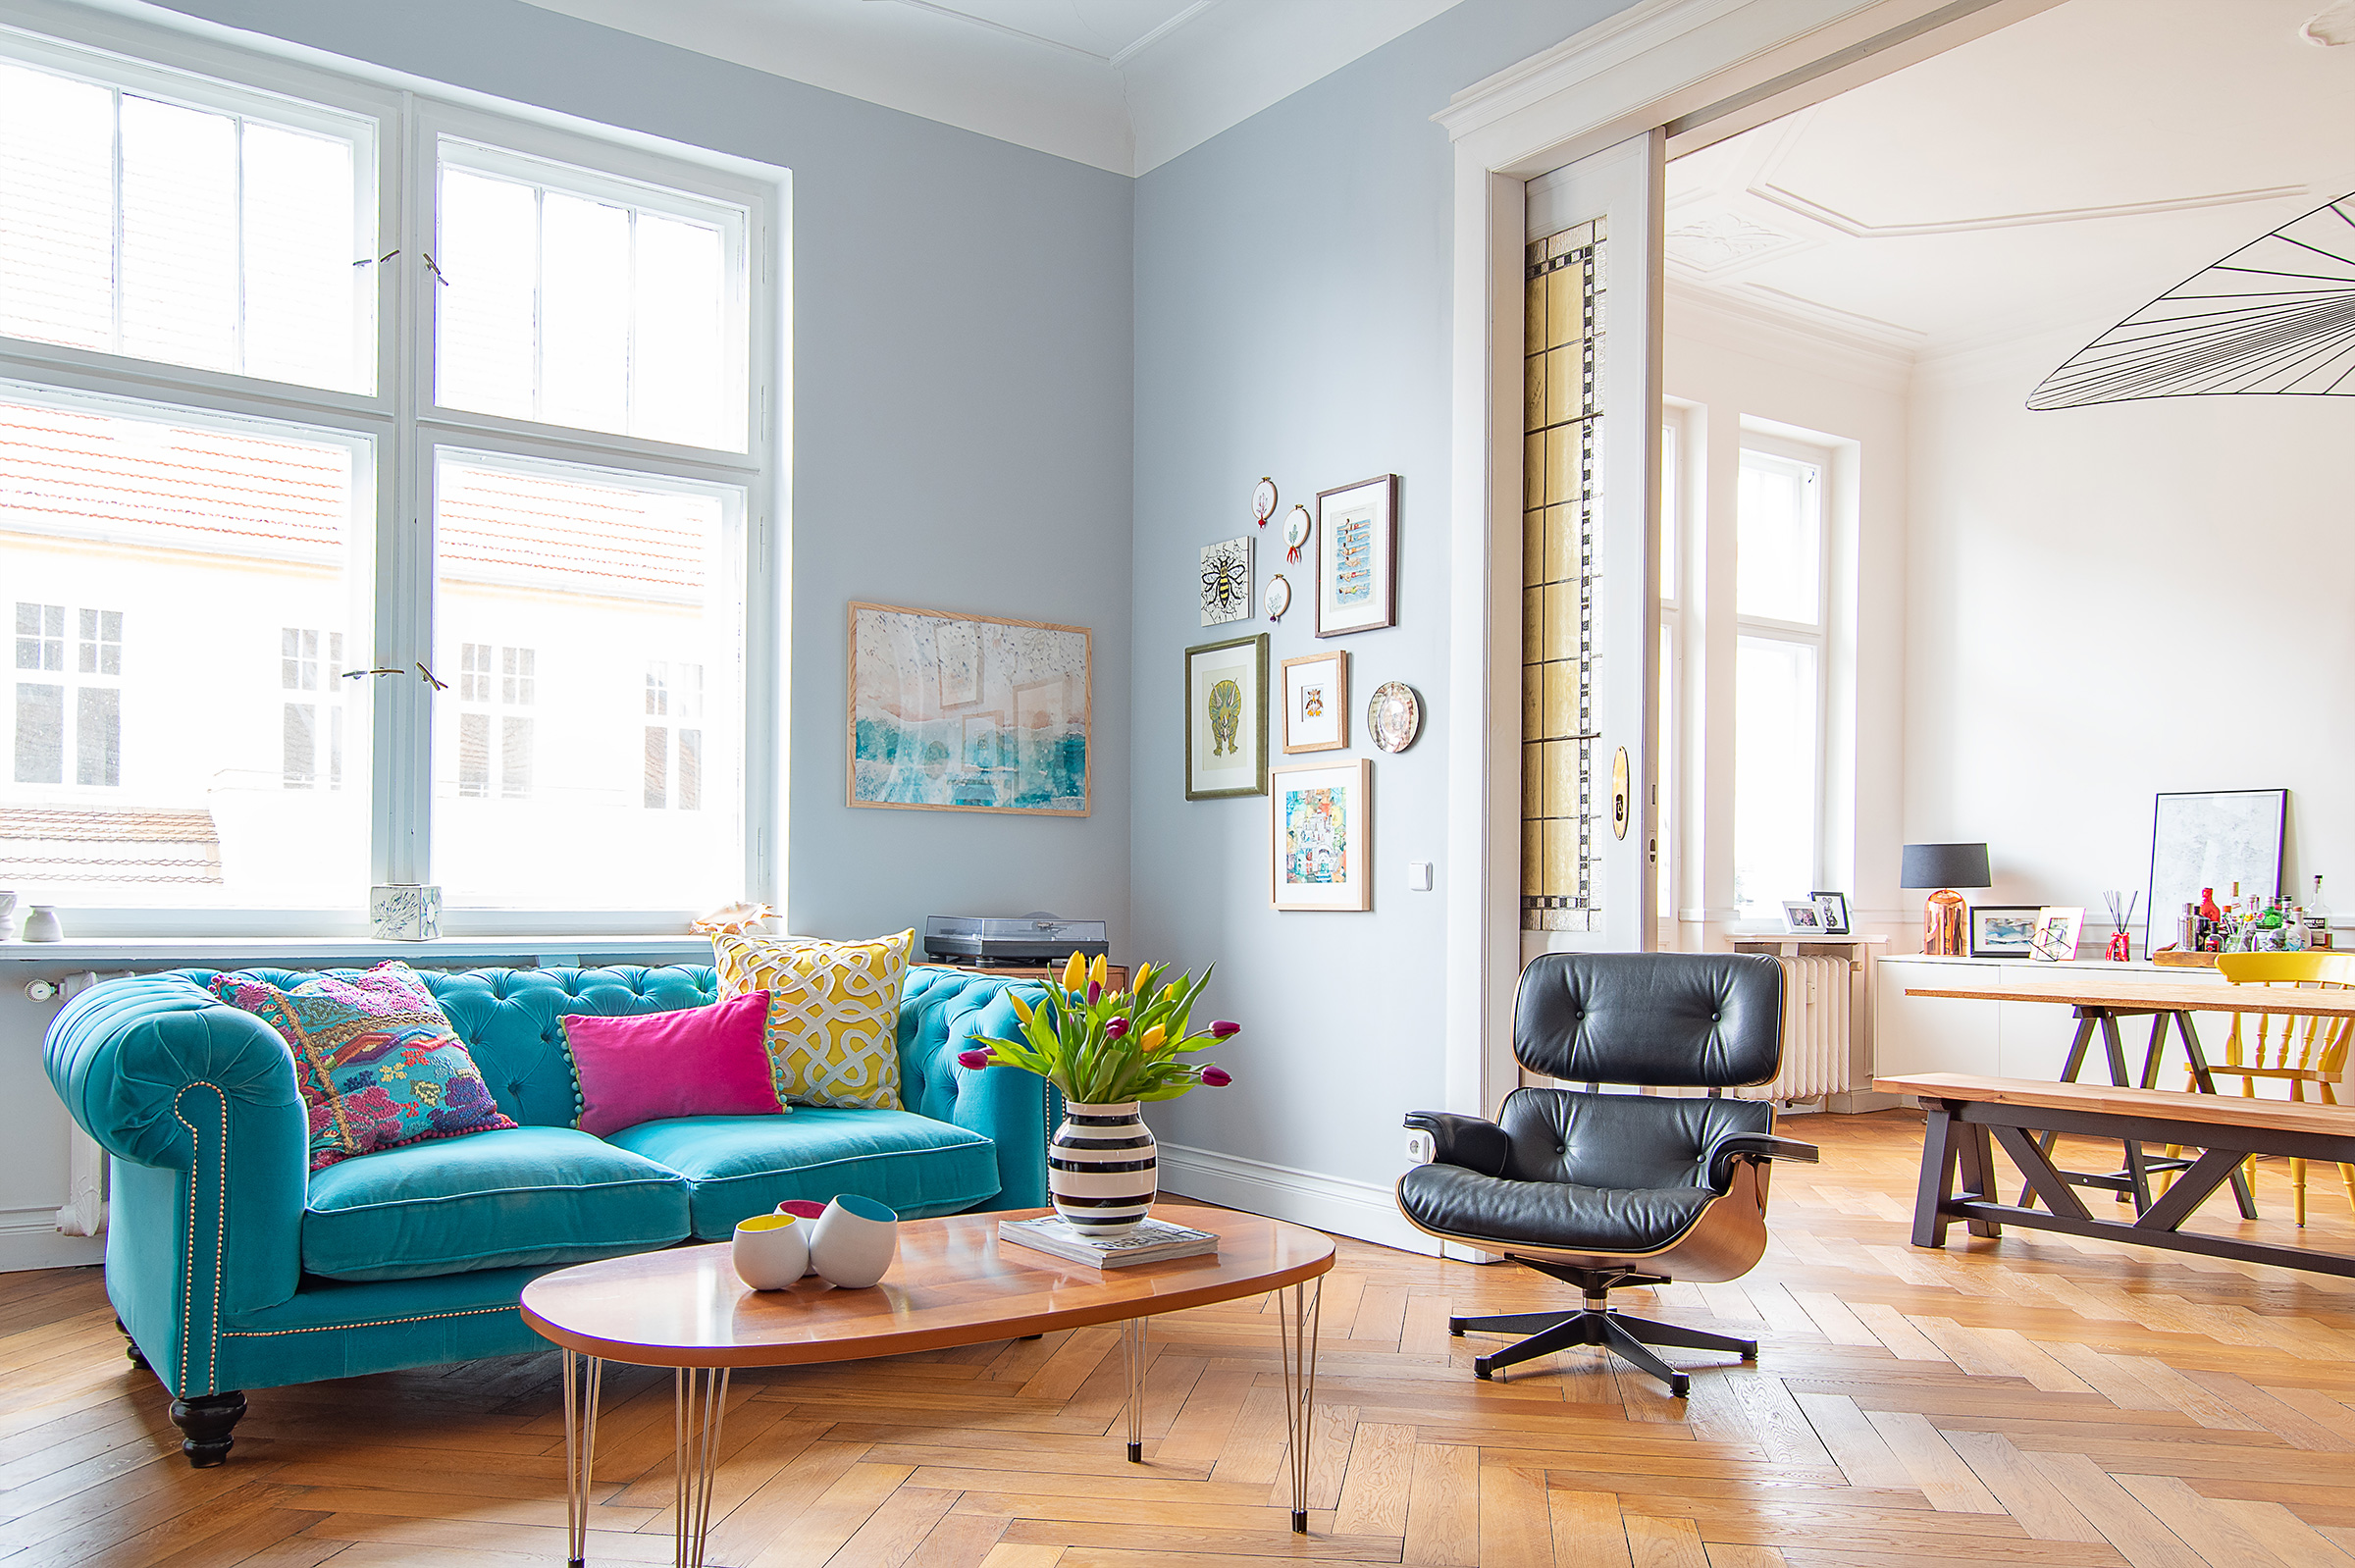 Eames Lounge Chair Living Room 3 years in our home today! + a house tour! - little house on